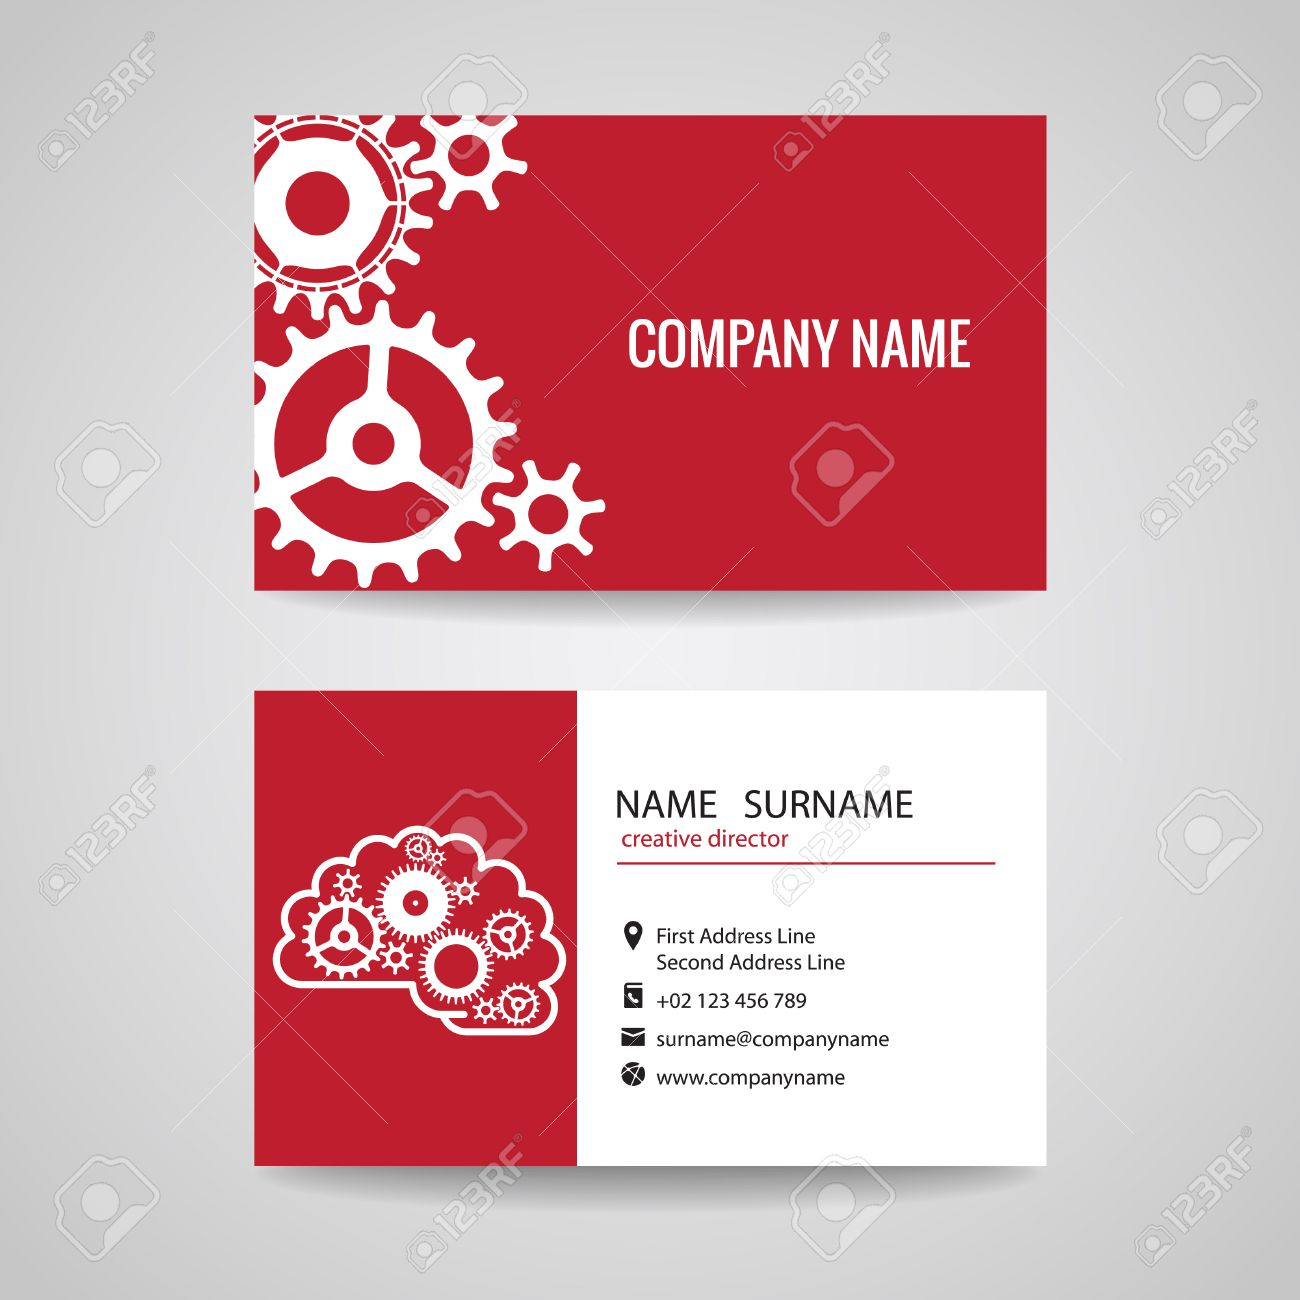 Business Card Gear Idea For Engineer And Mechanical Royalty Free ...